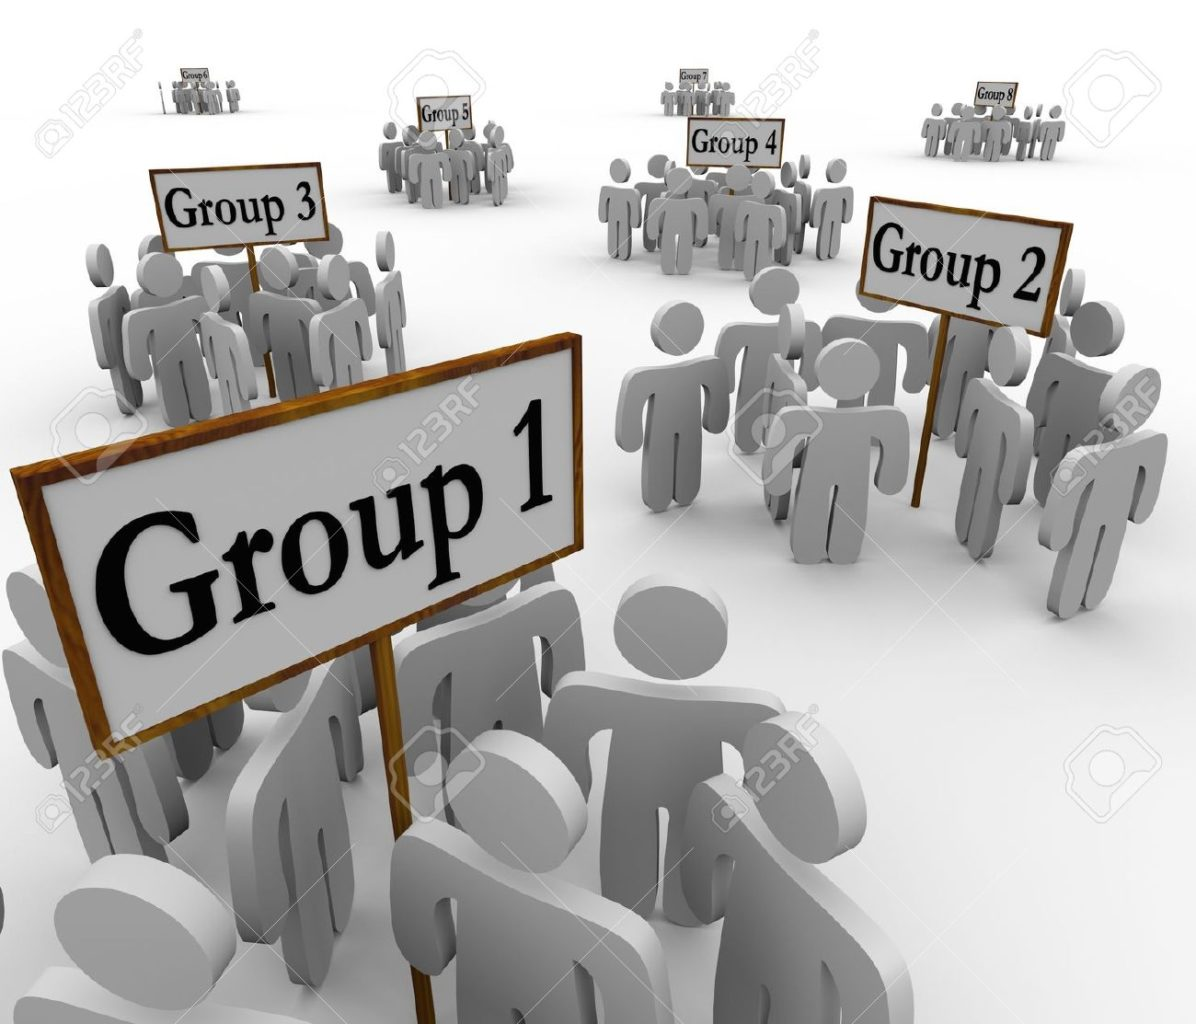 A stock photo of groups of people in different factions